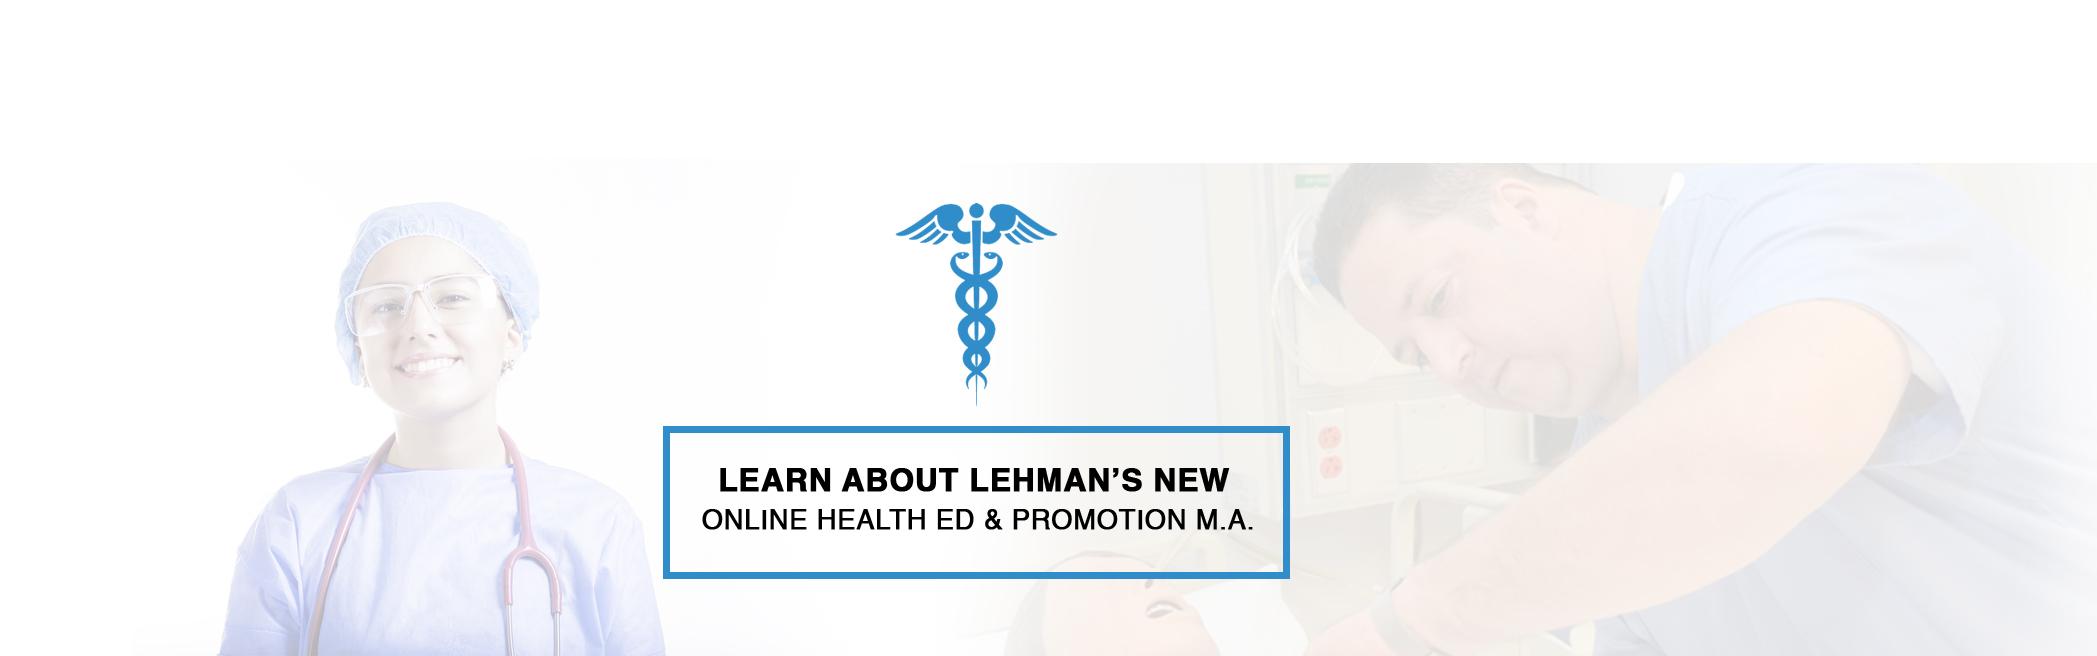 Lehman's New Online M.A. in Health Education and Promotion